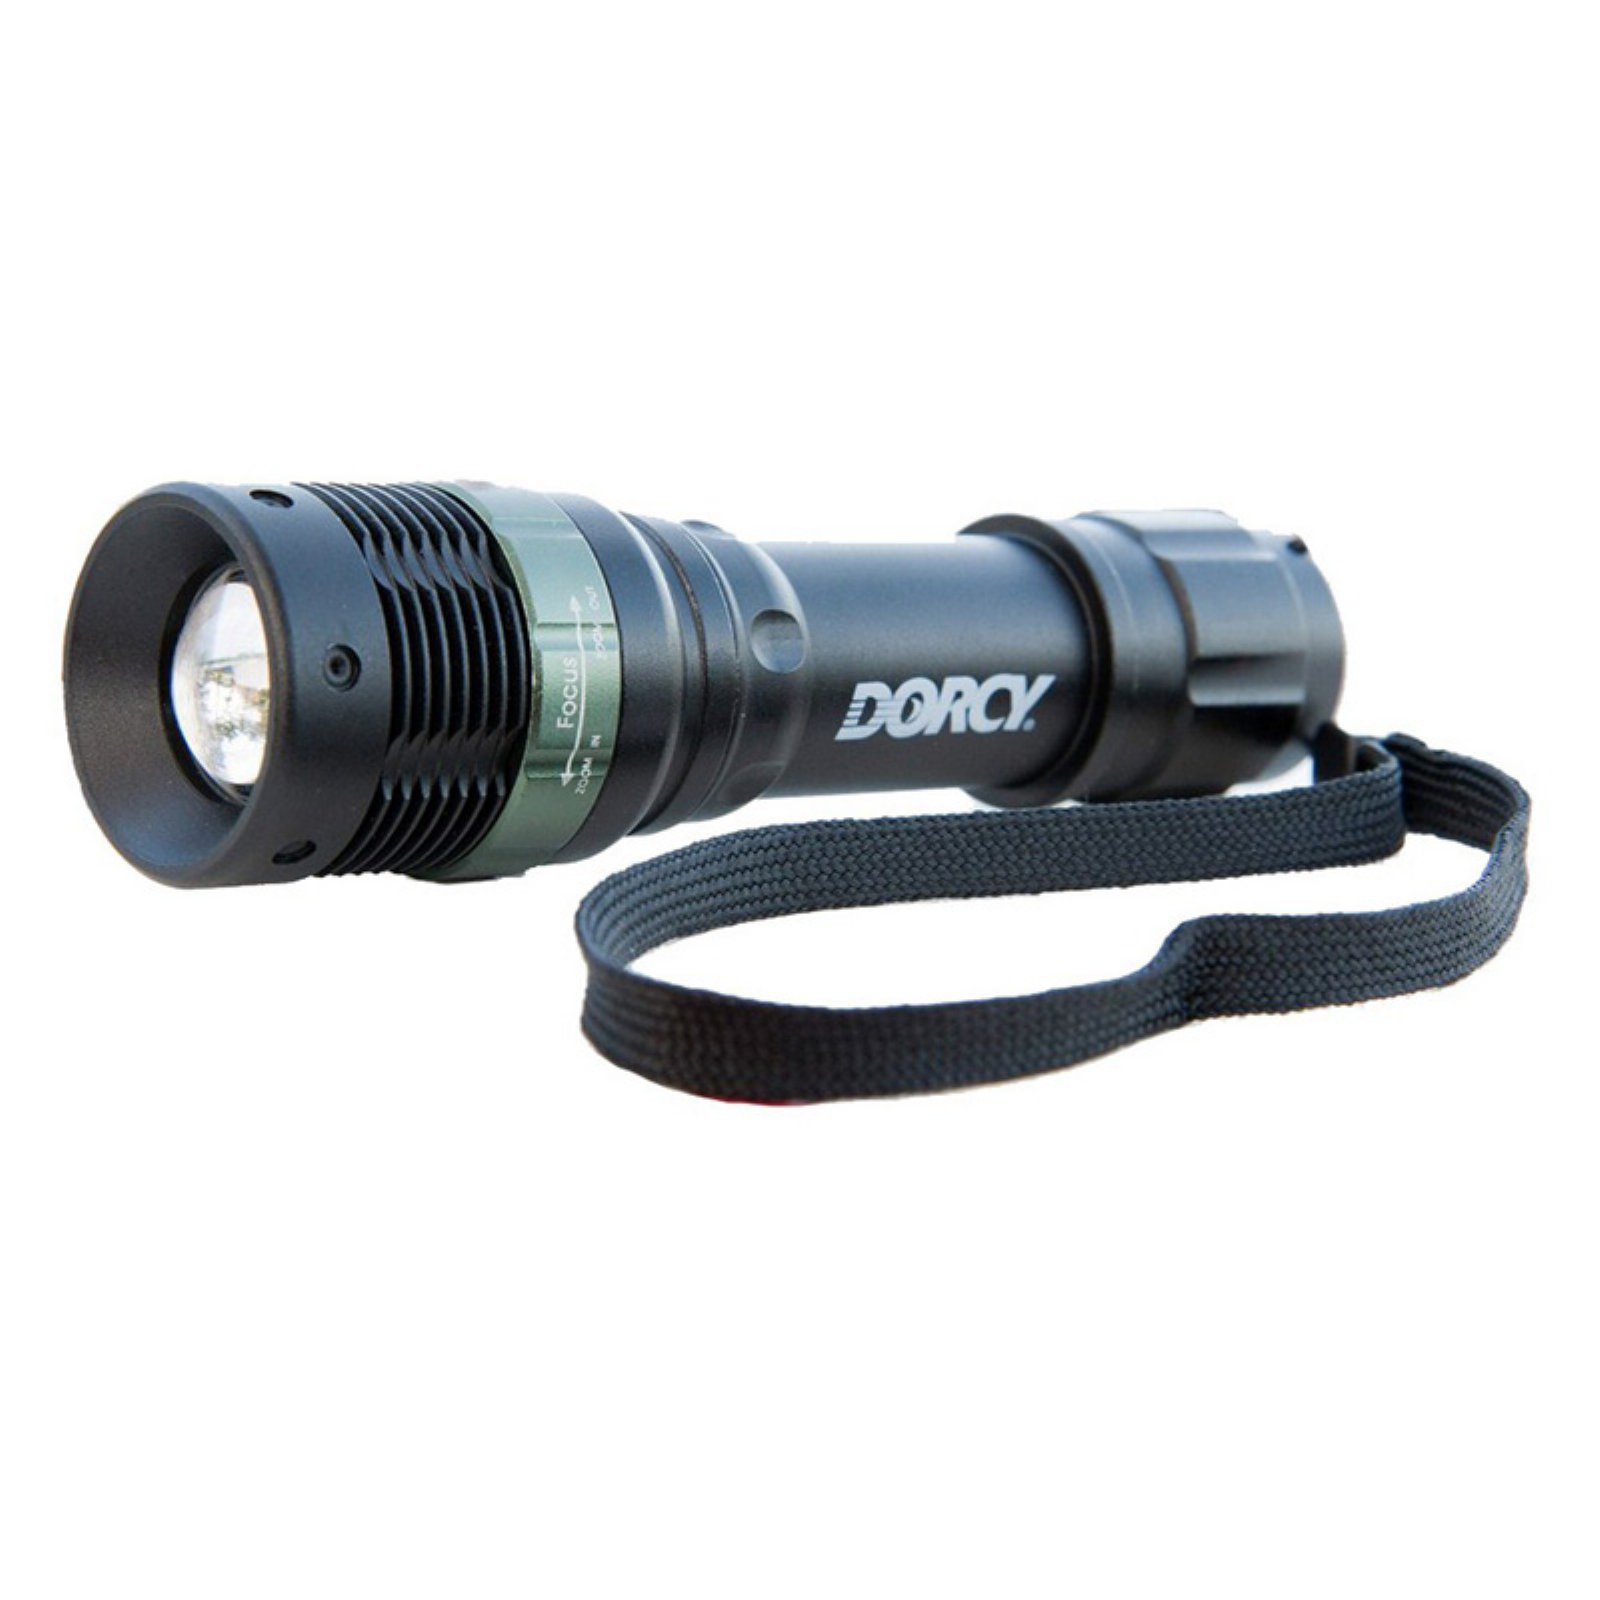 Dorcy 414280 130-Lumen Focusing Flashlight